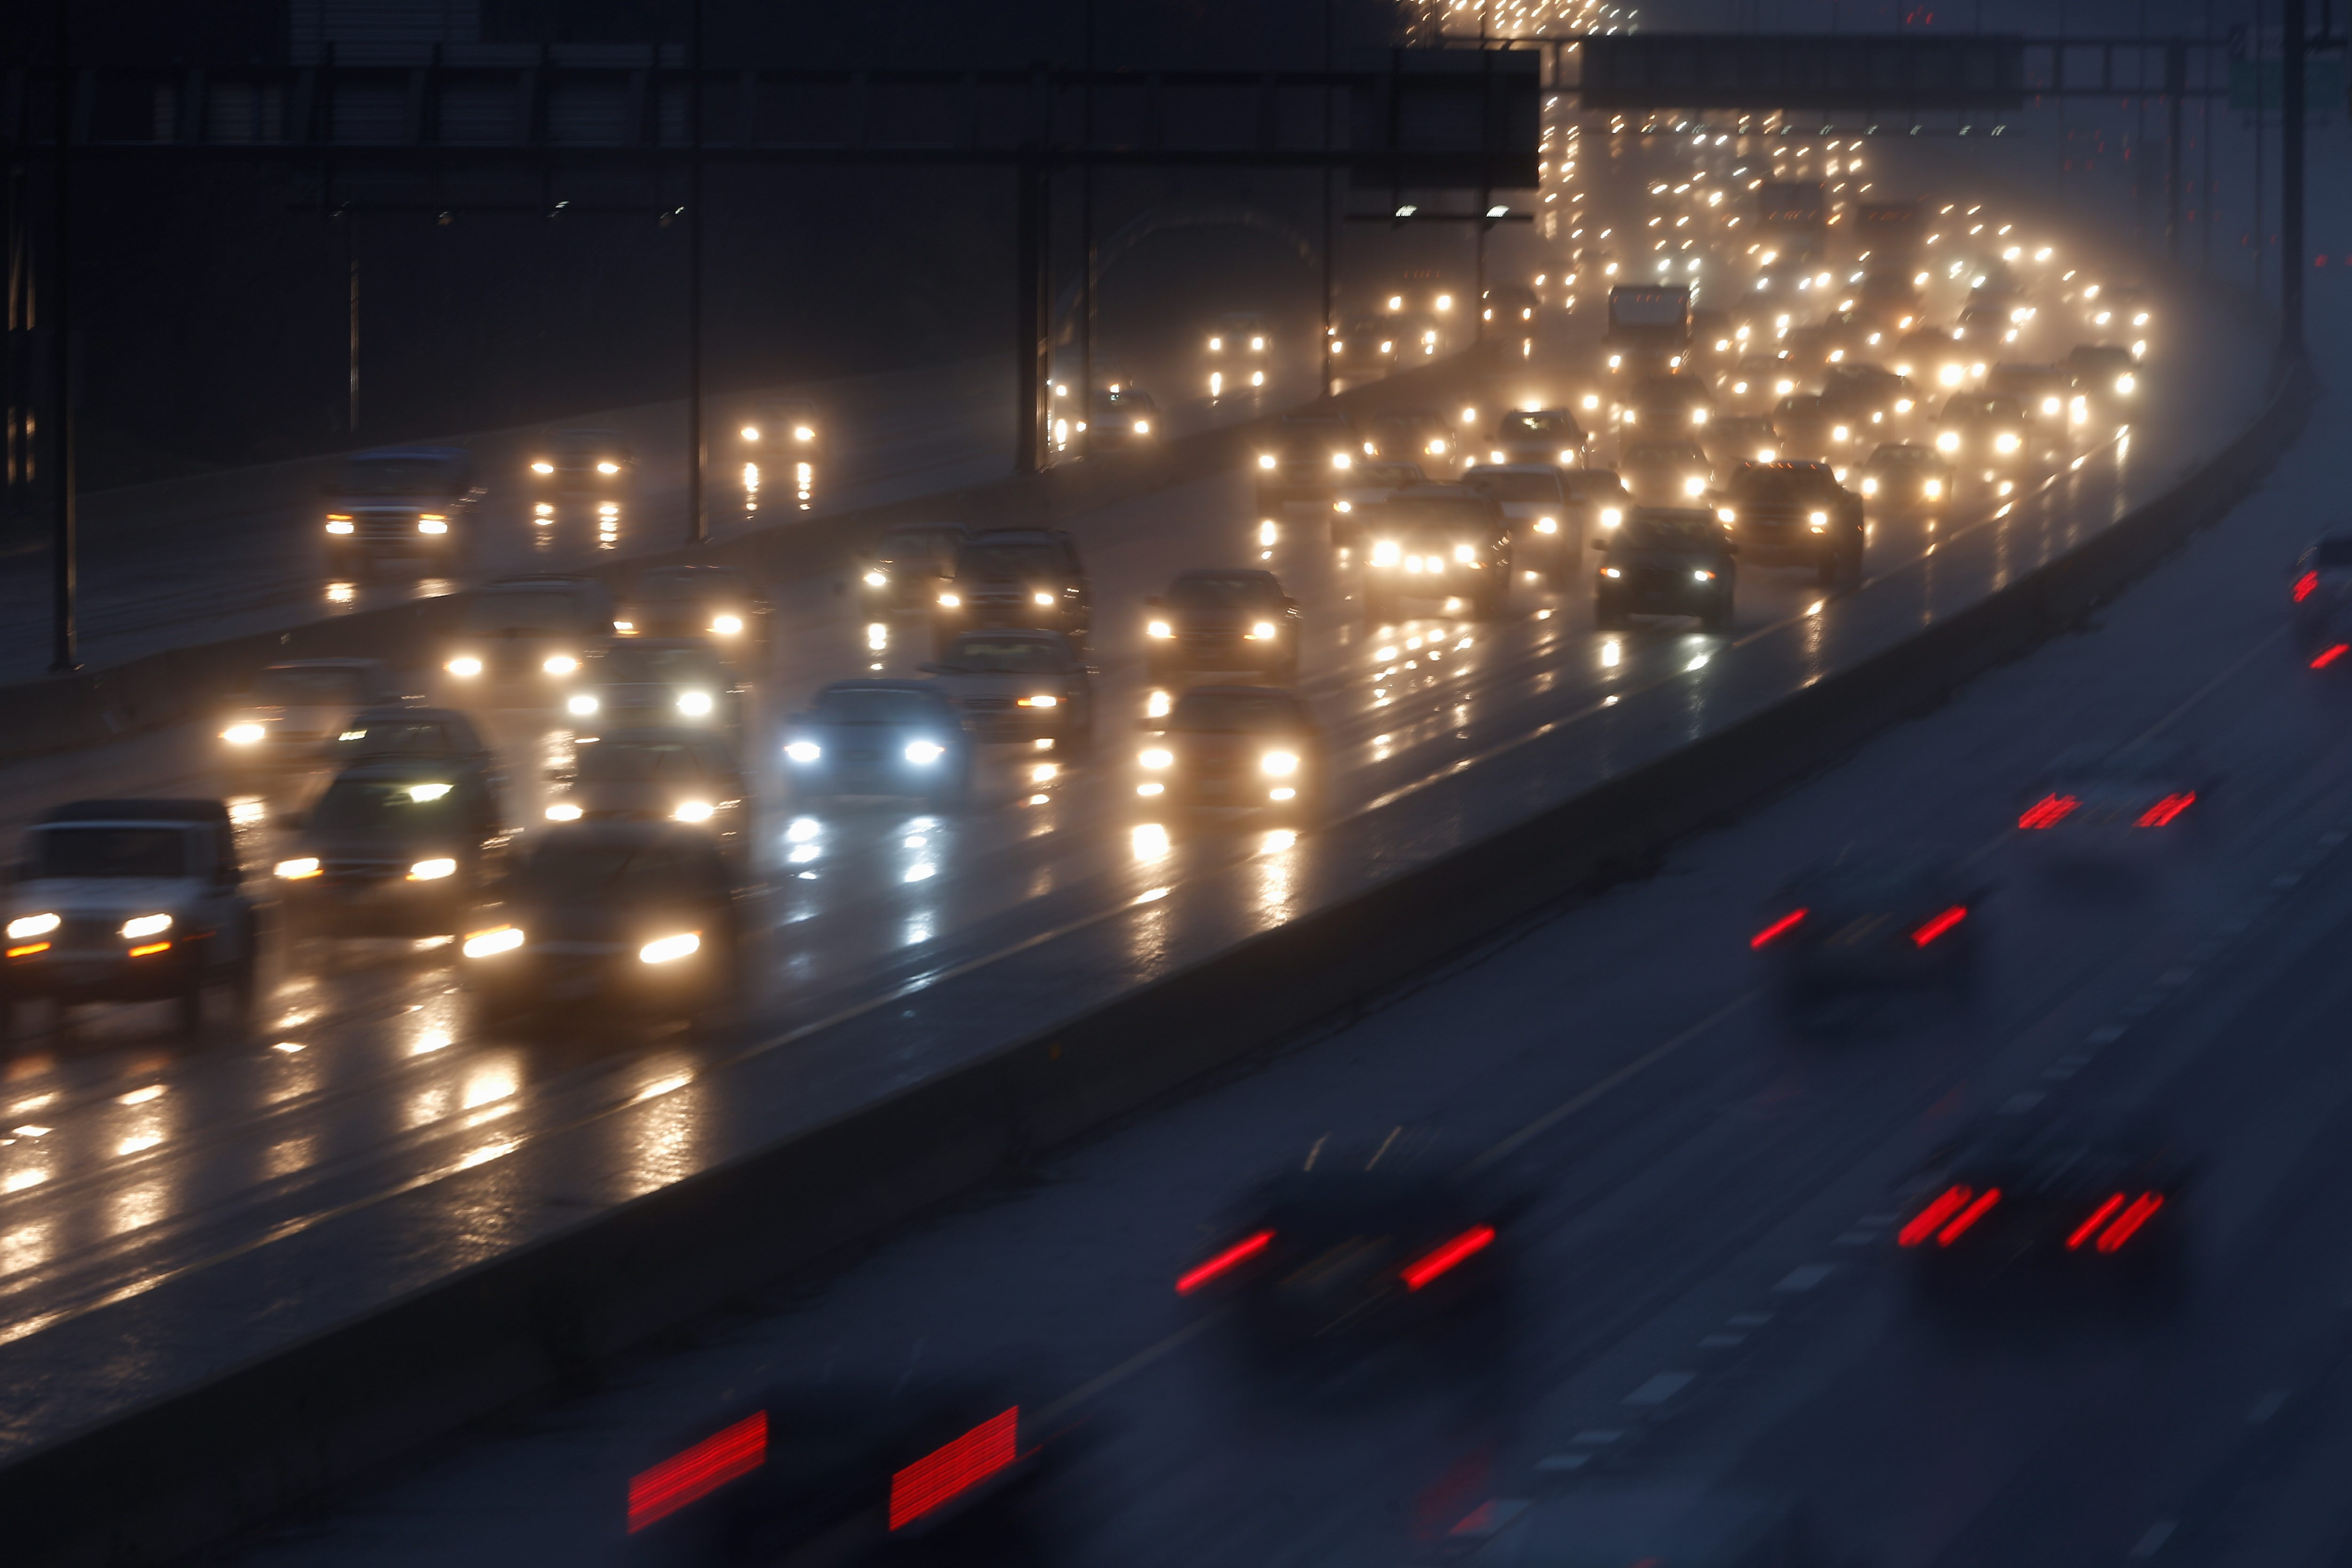 Larry Hogan Maryland I-270 widening plan with toll lanes stalled ...